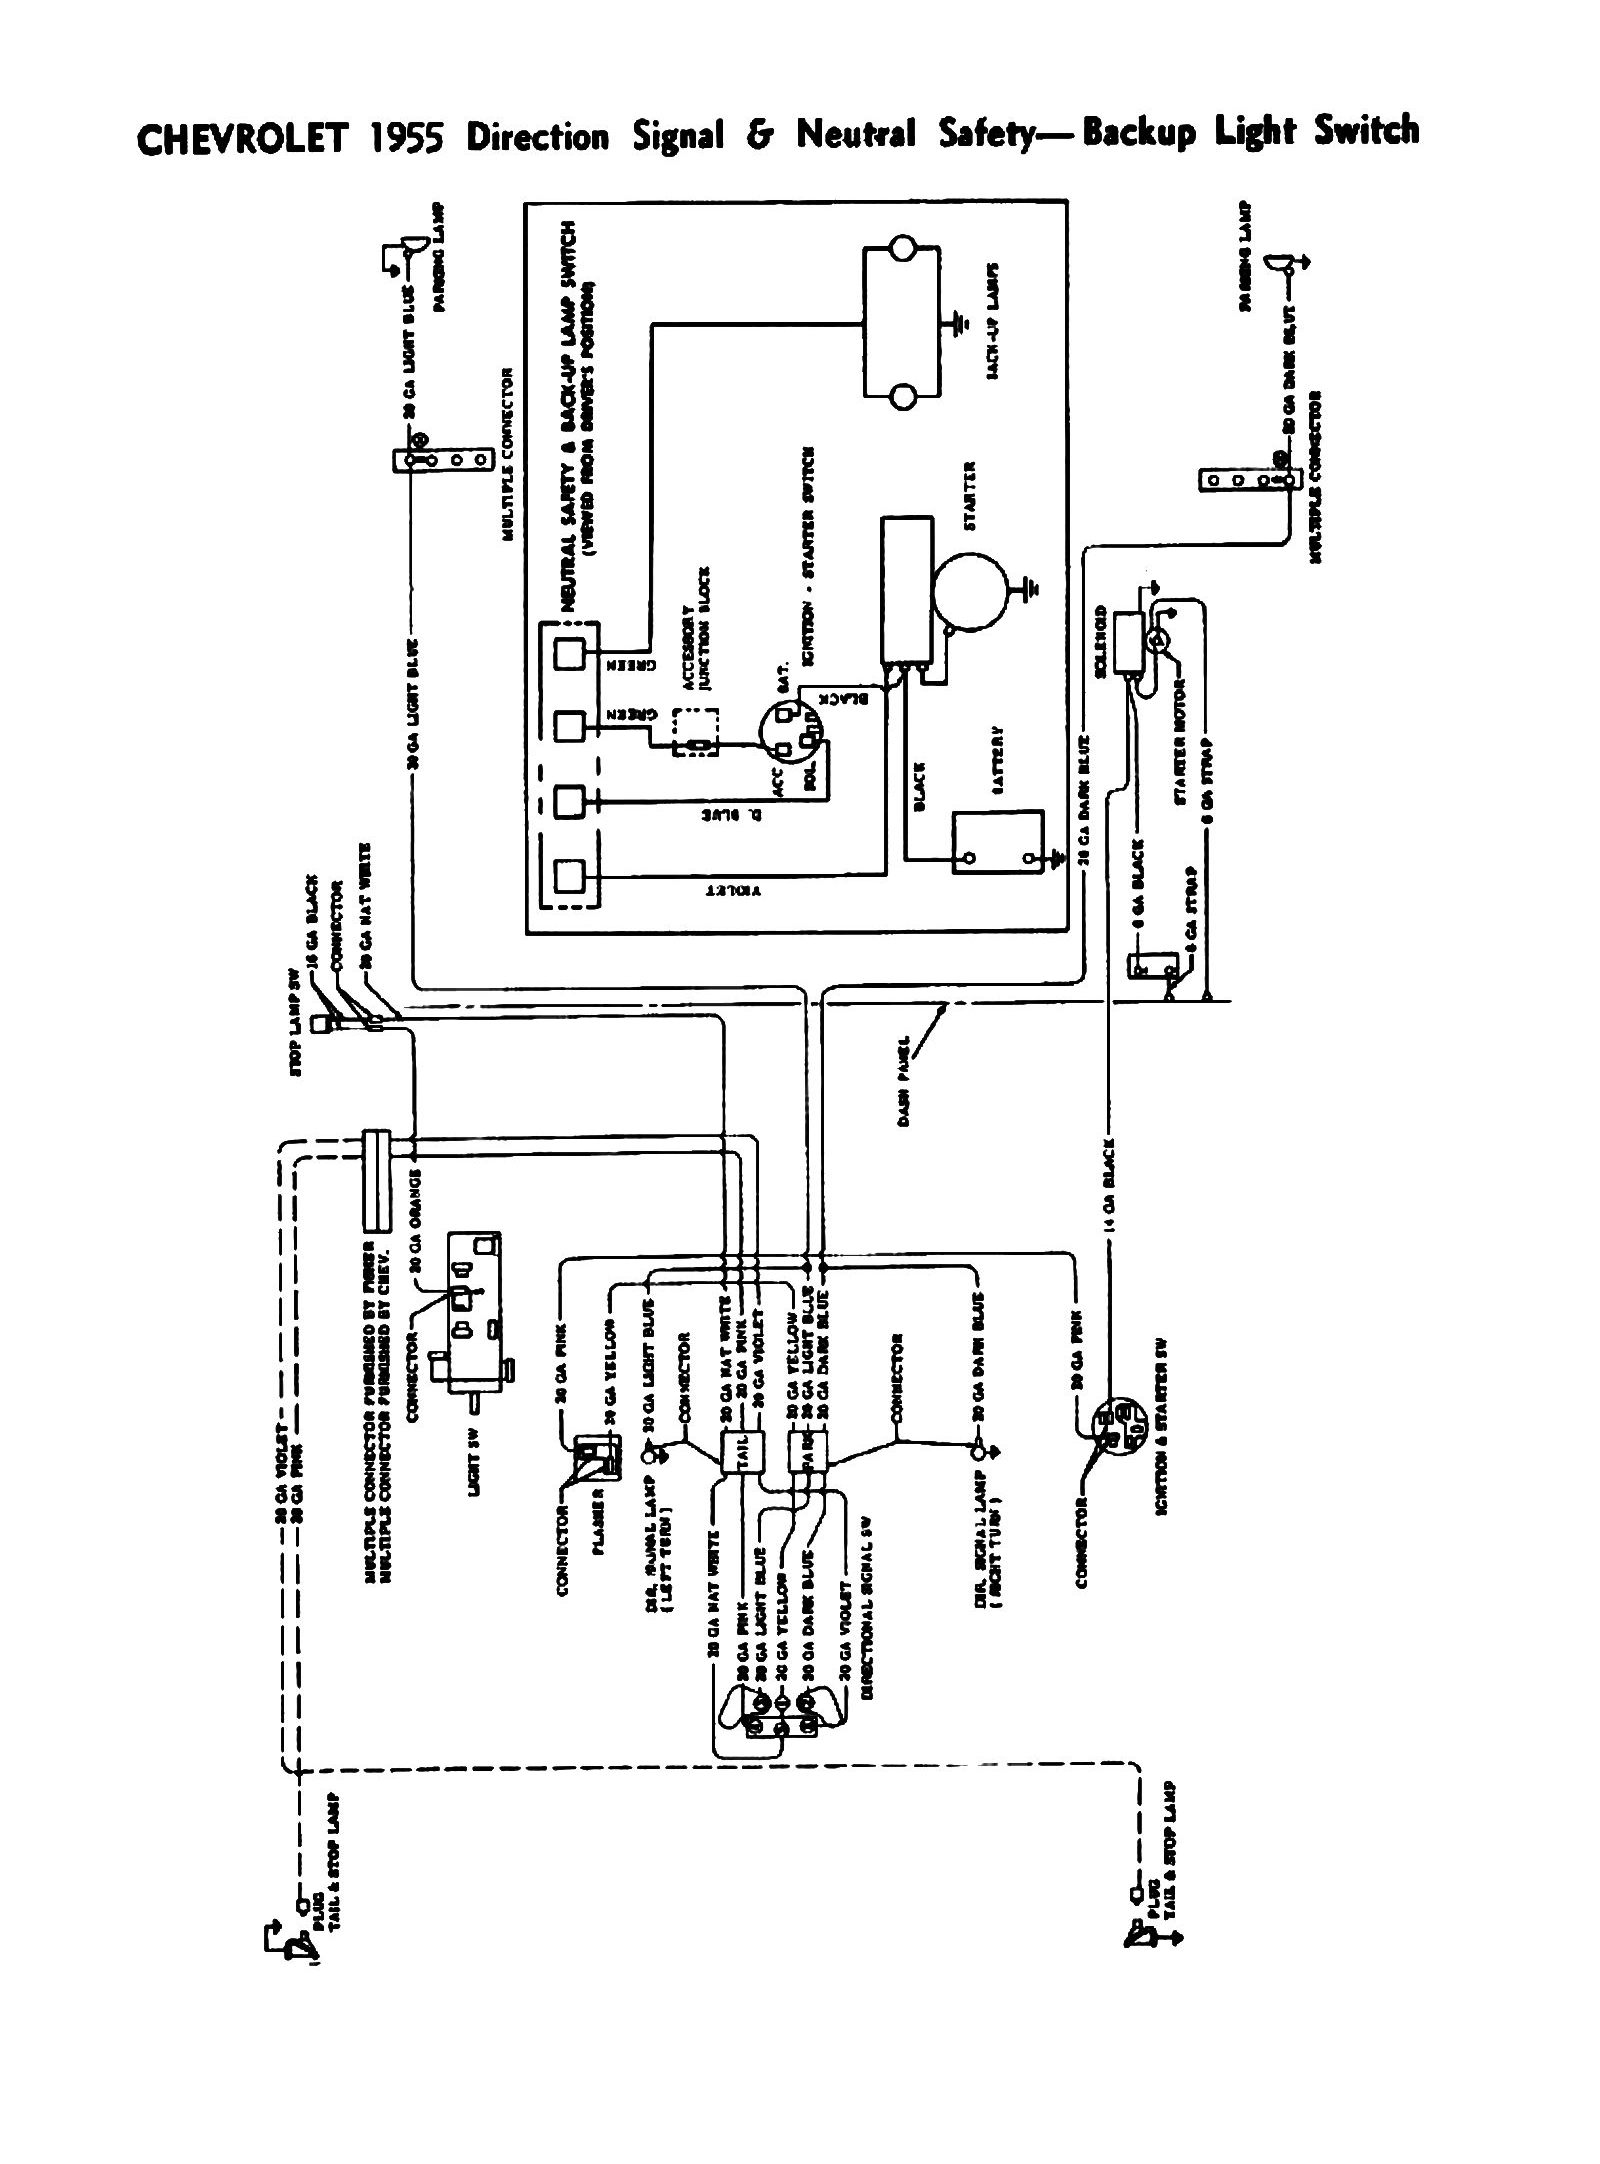 Signal on 1957 Thunderbird Wiring Diagram